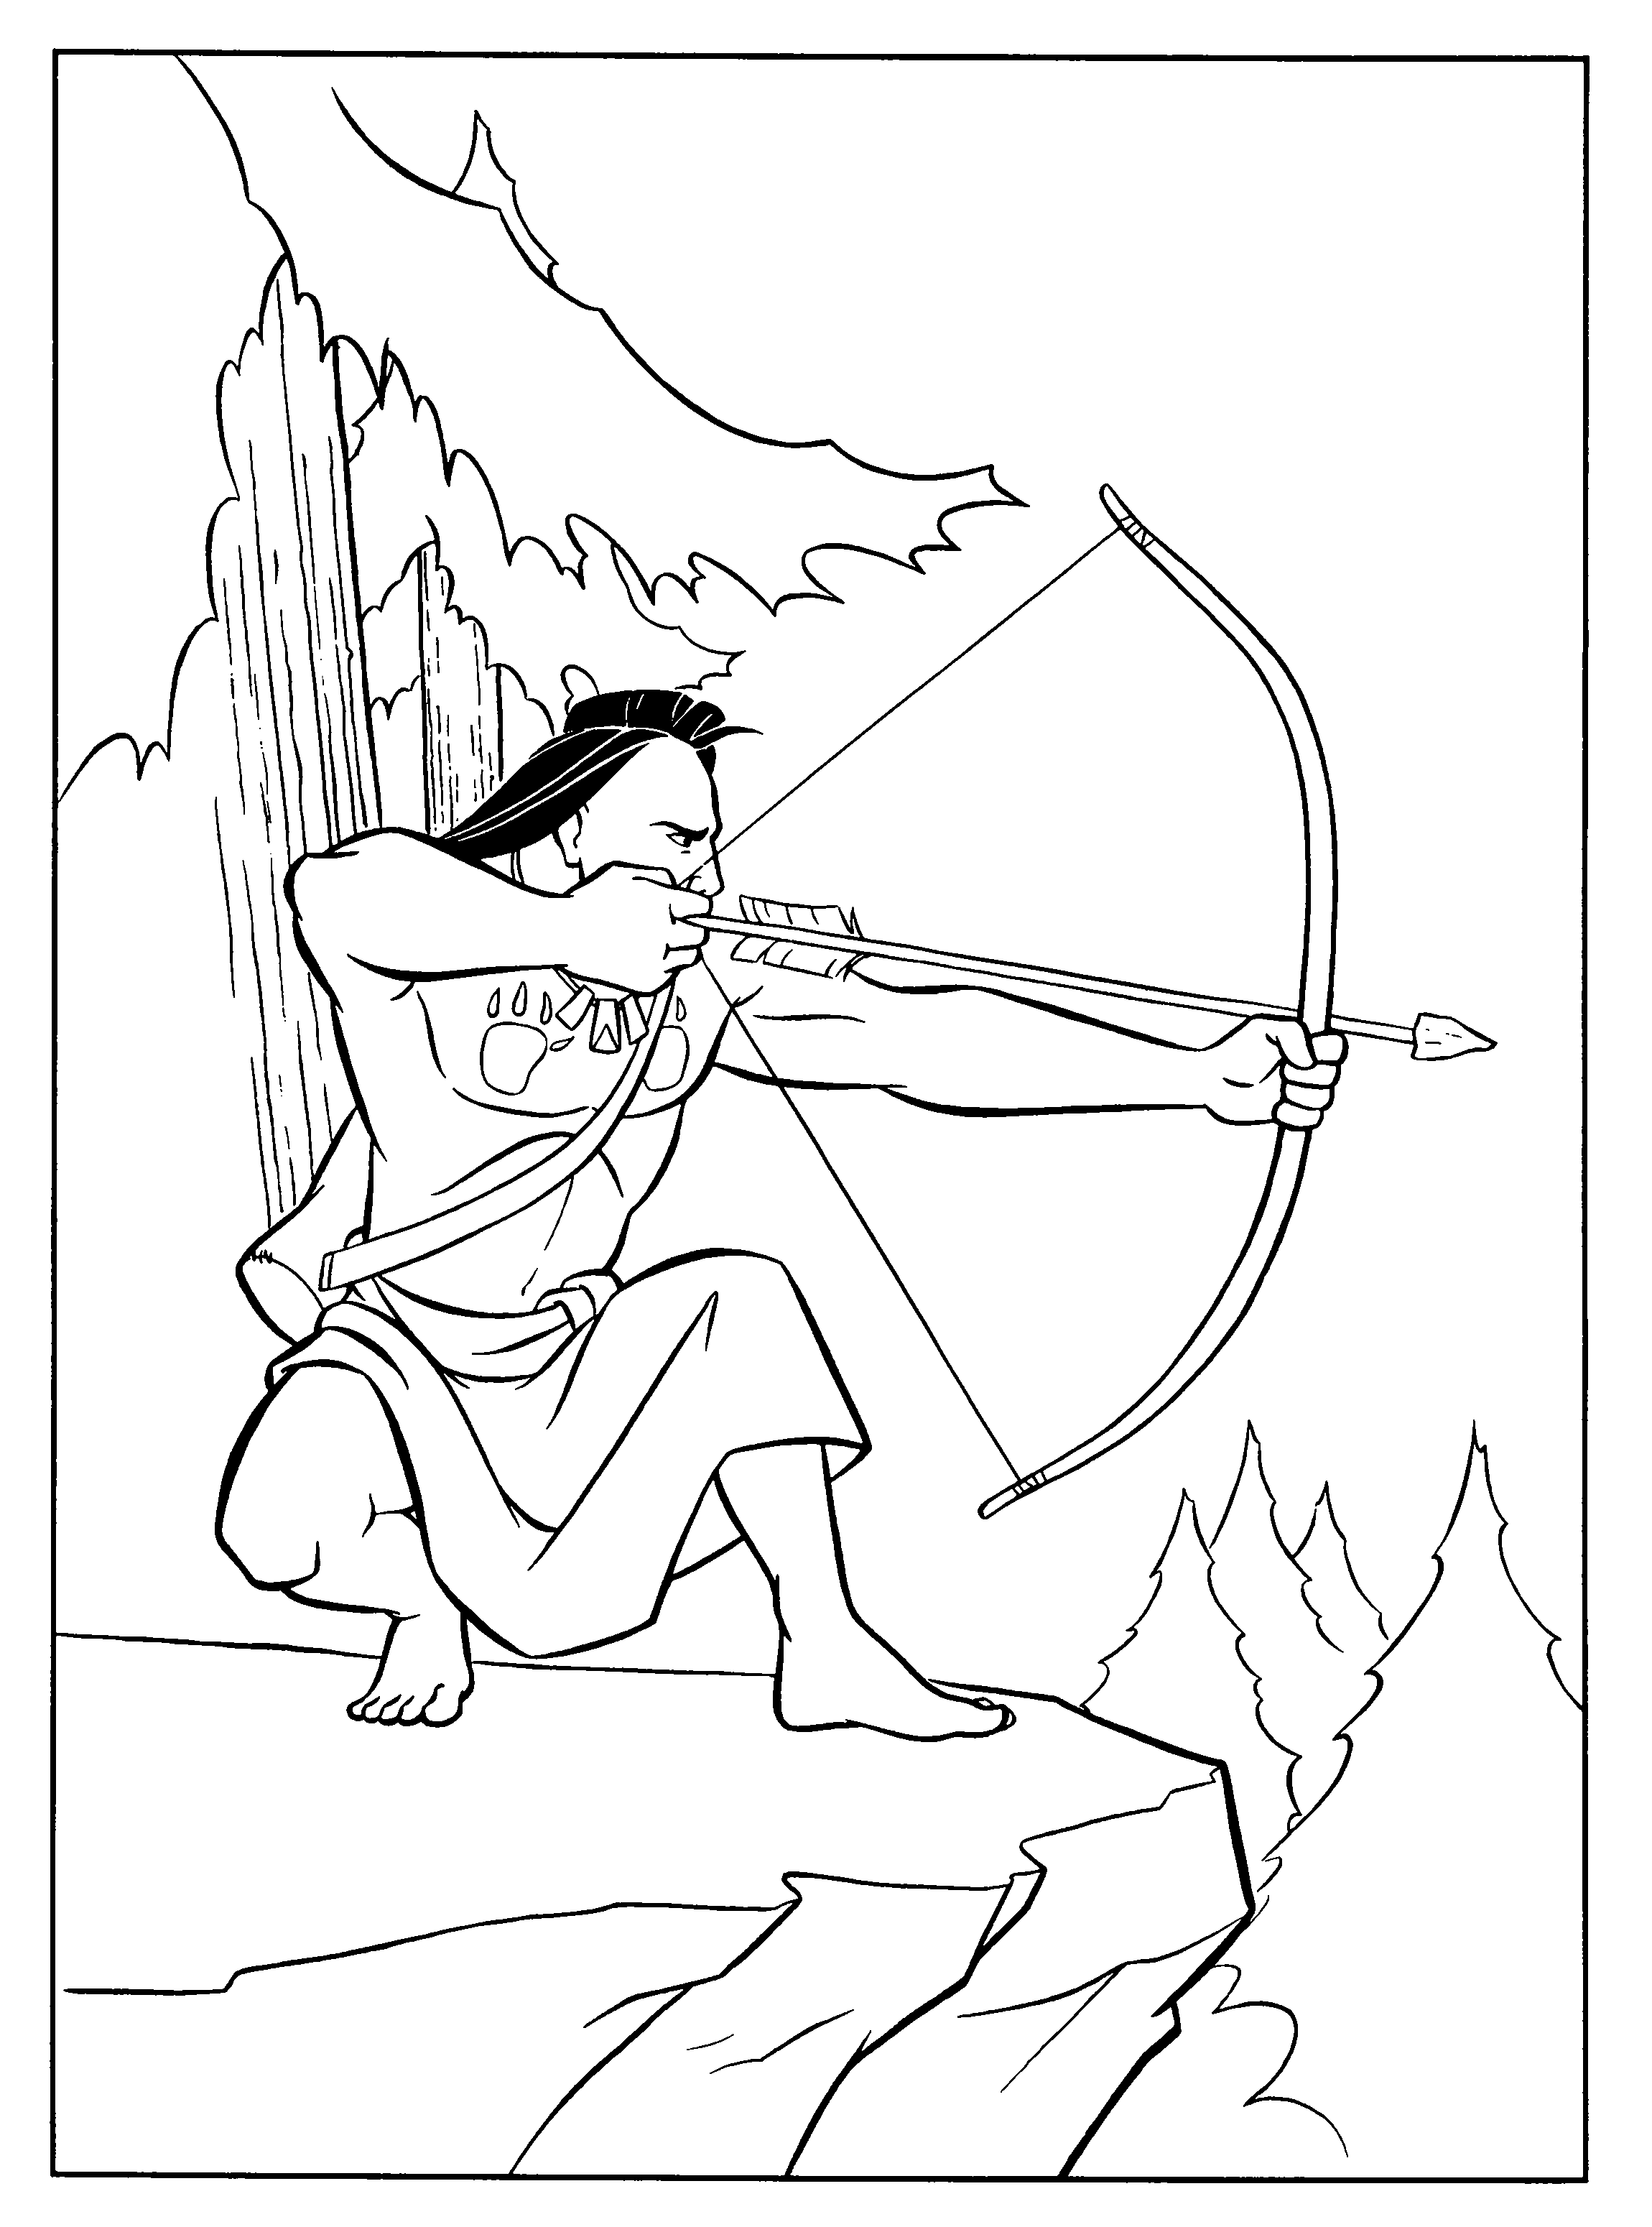 pocahontas coloring pages - Google-søgning | Indian Stuff ...